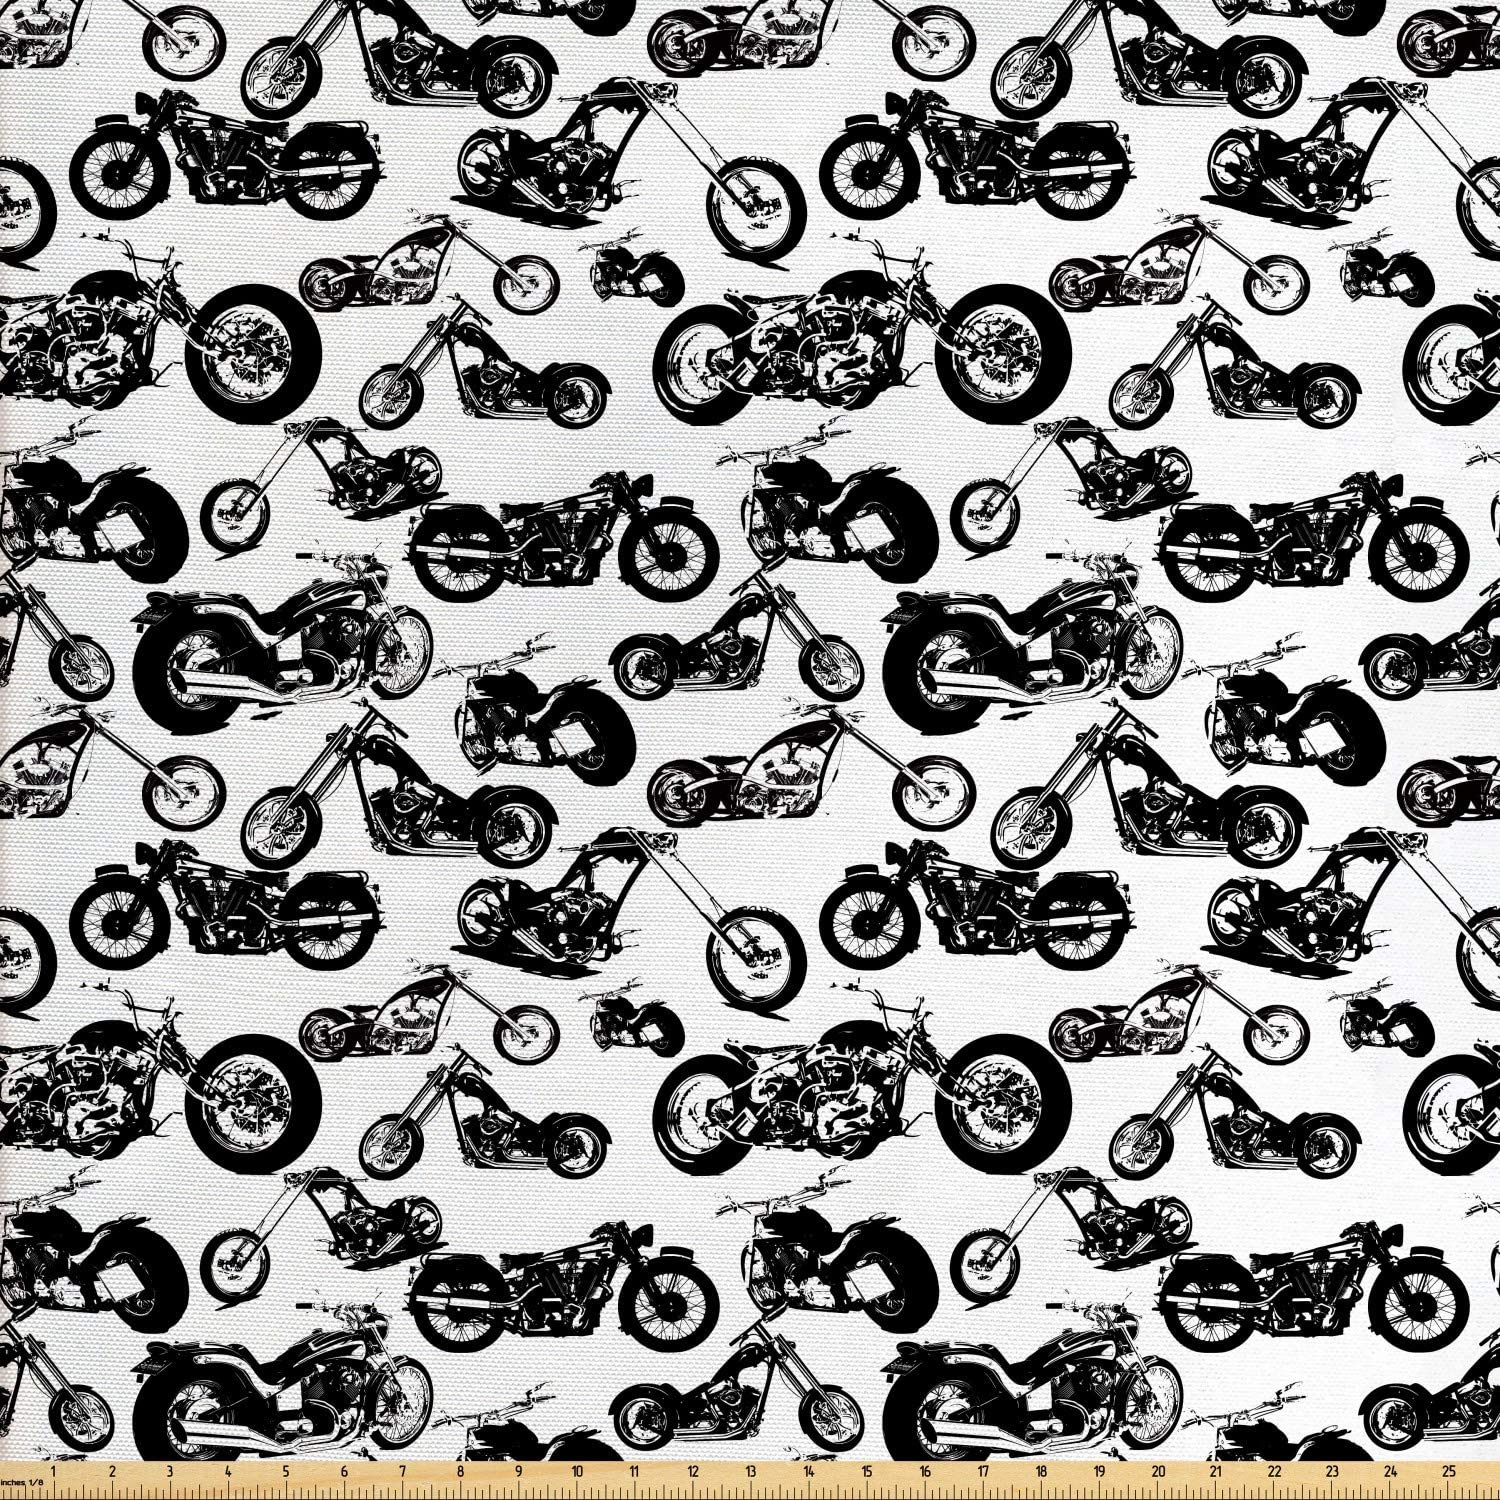 Ambesonne Motorcycle Fabric by The Yard, Retro Chopper Pattern Monochrome Motorbike Design Adventure Cruising Theme, Decorative Fabric for Upholstery and Home Accents, 2 Yards, White and Black